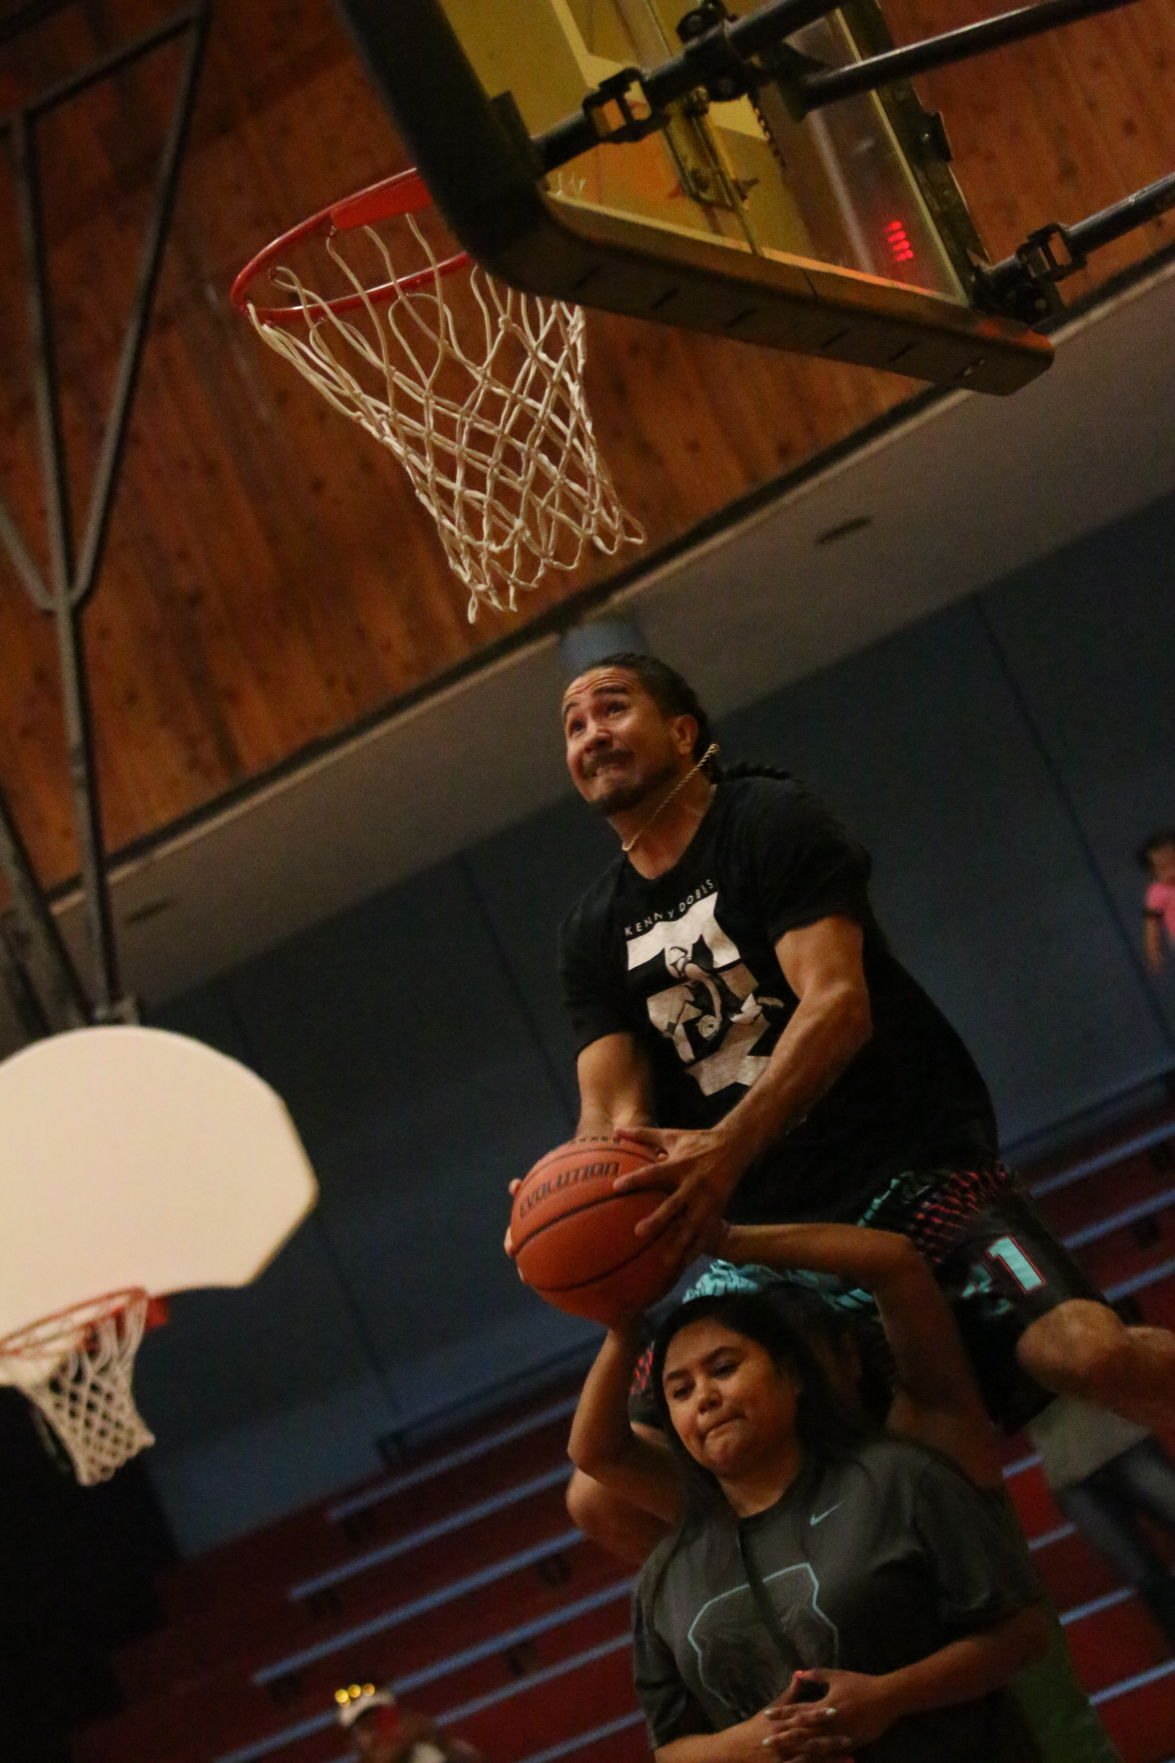 Scenes from the Kenny Dobbs Basketball Camp held at the Nespelem Community Center (August 5-6) for K-12 youth. Dobbs capped off the camp with an All-star game and slam-dunk contest on Tuesday, August 6, 2019